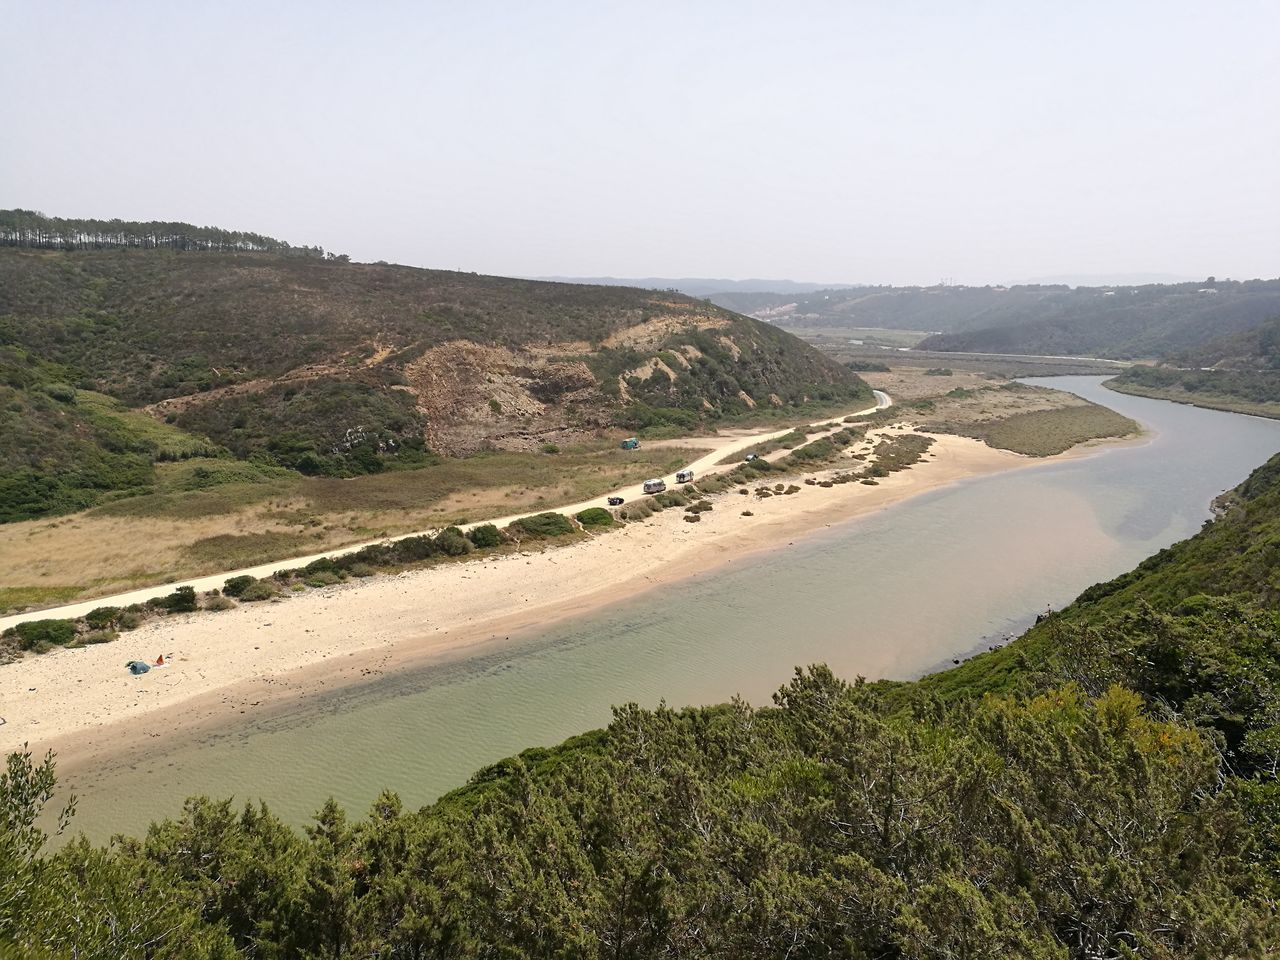 Nature Water Day No People Outdoors Heat - Temperature Beach Beauty In Nature Sand Dune Beach Photography River Odeceixe Alentejo Algarve